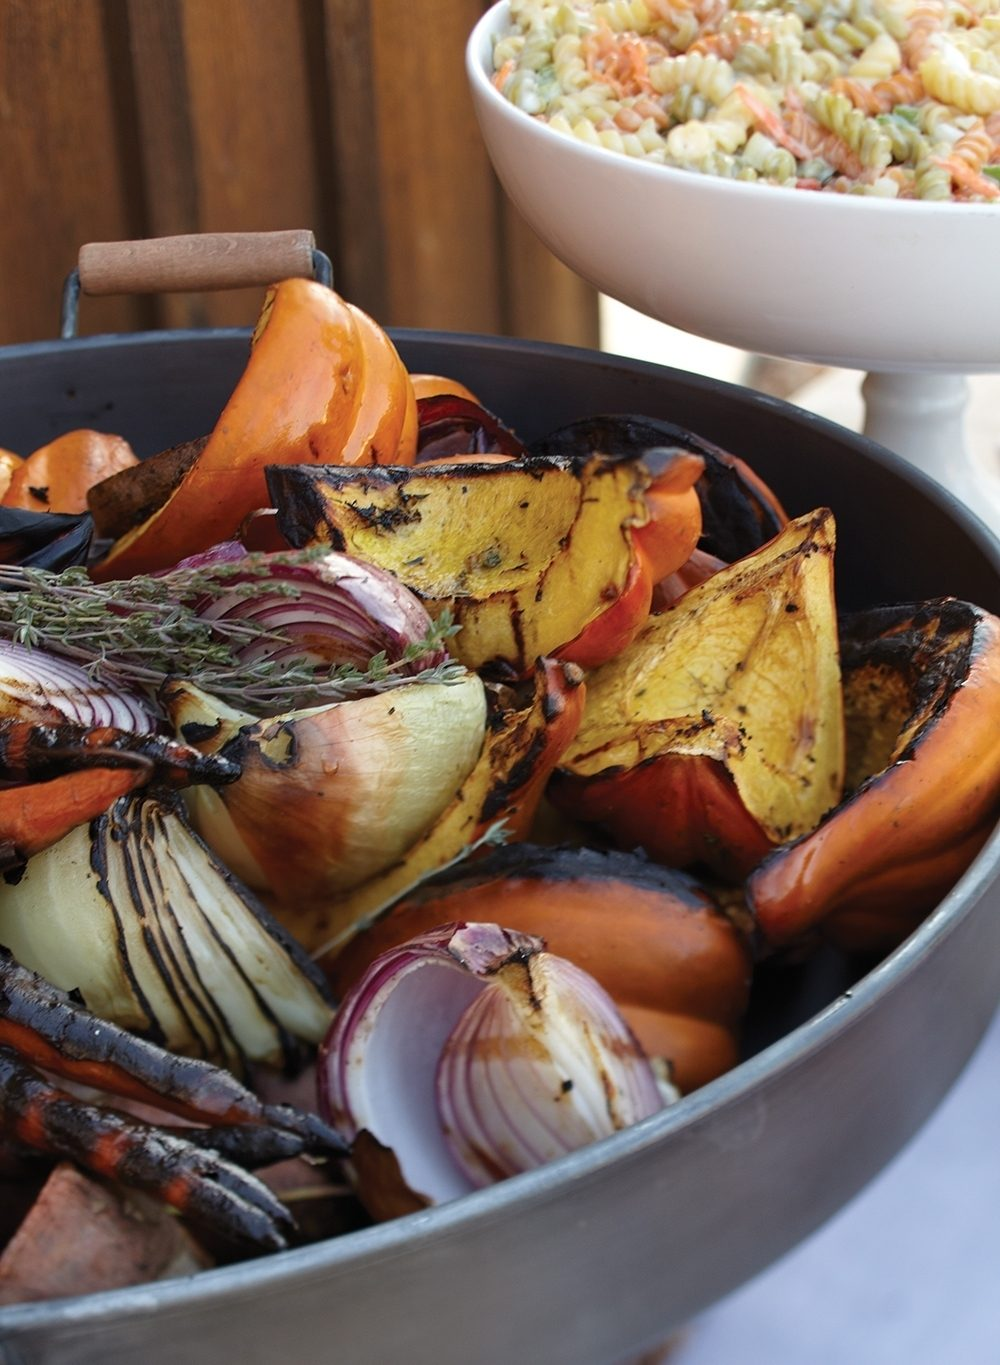 Whole and chunked root vegetables were cooked on grates over a fire for a casual outdoor fall party.